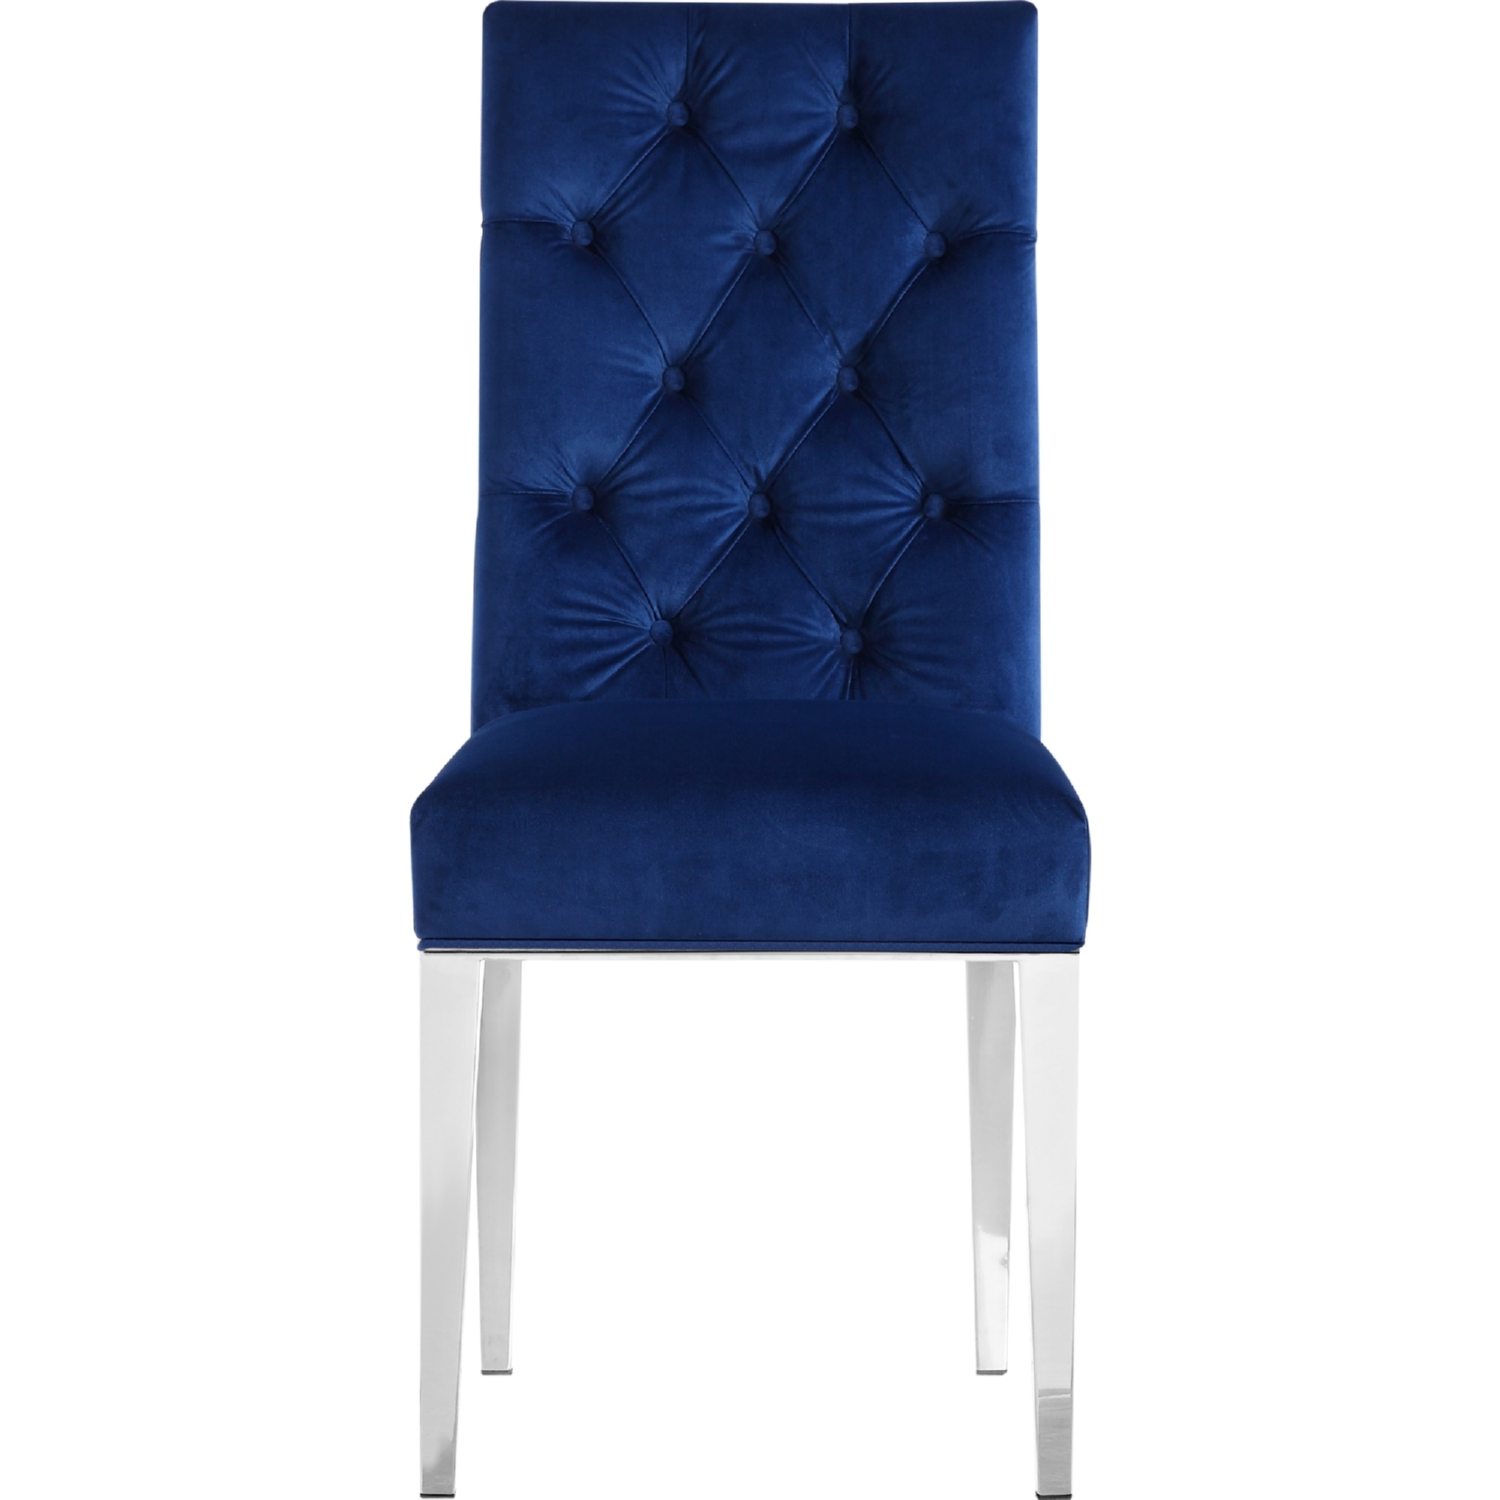 Meridian Furniture 732Navy C Juno Navy Tufted Velvet Dining Chair